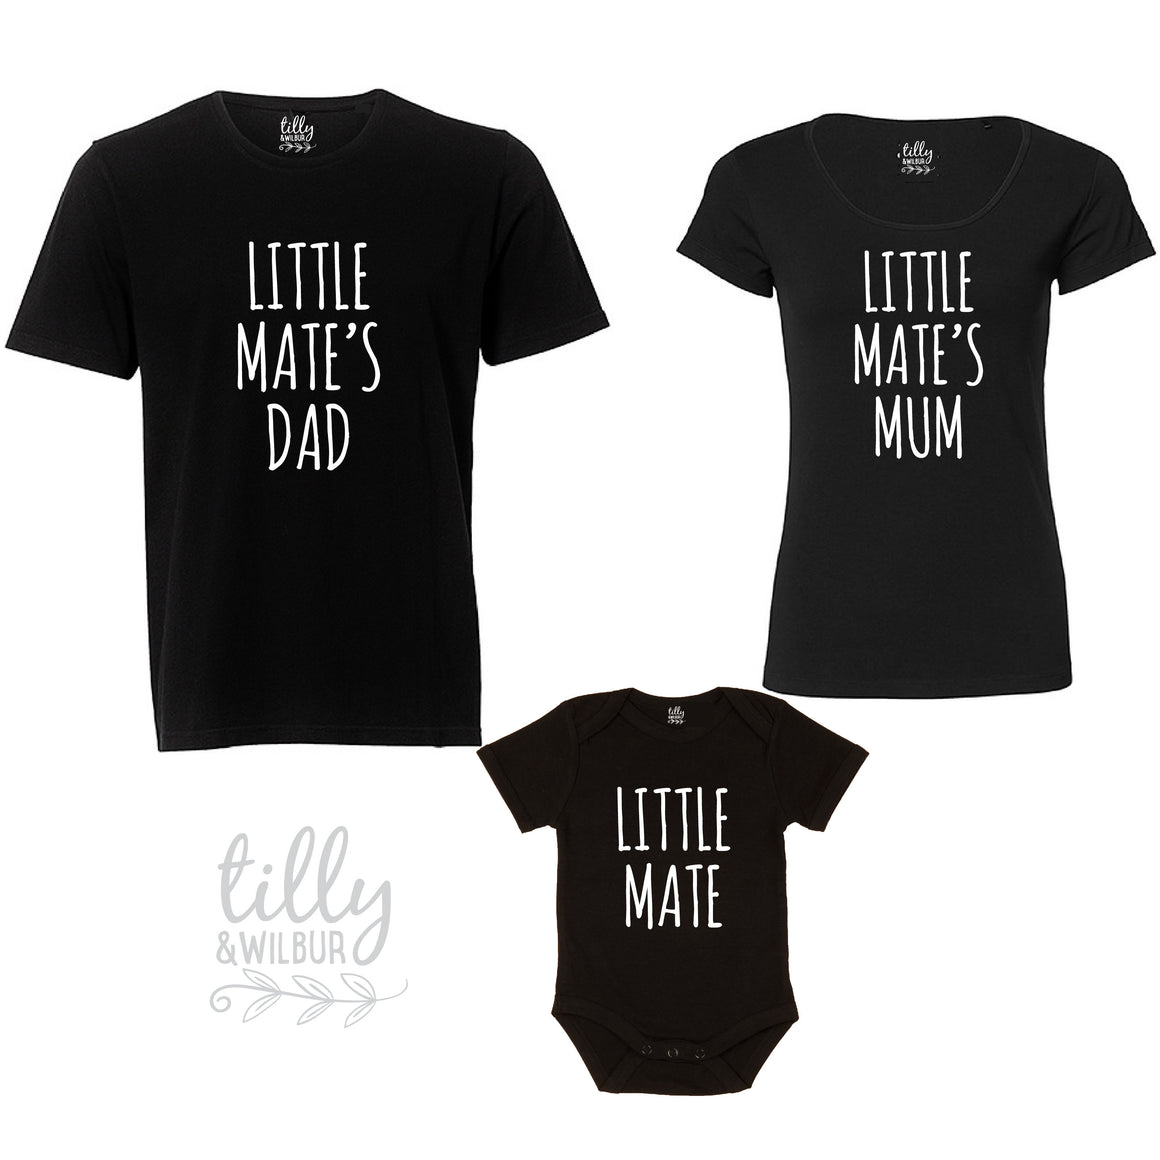 Matchy Matchy Little Mate Set, Little Mate, Little Mate's Dad, Little Mate's Mum, Matching Family Outfits, New Baby Gift, New Parents Gift